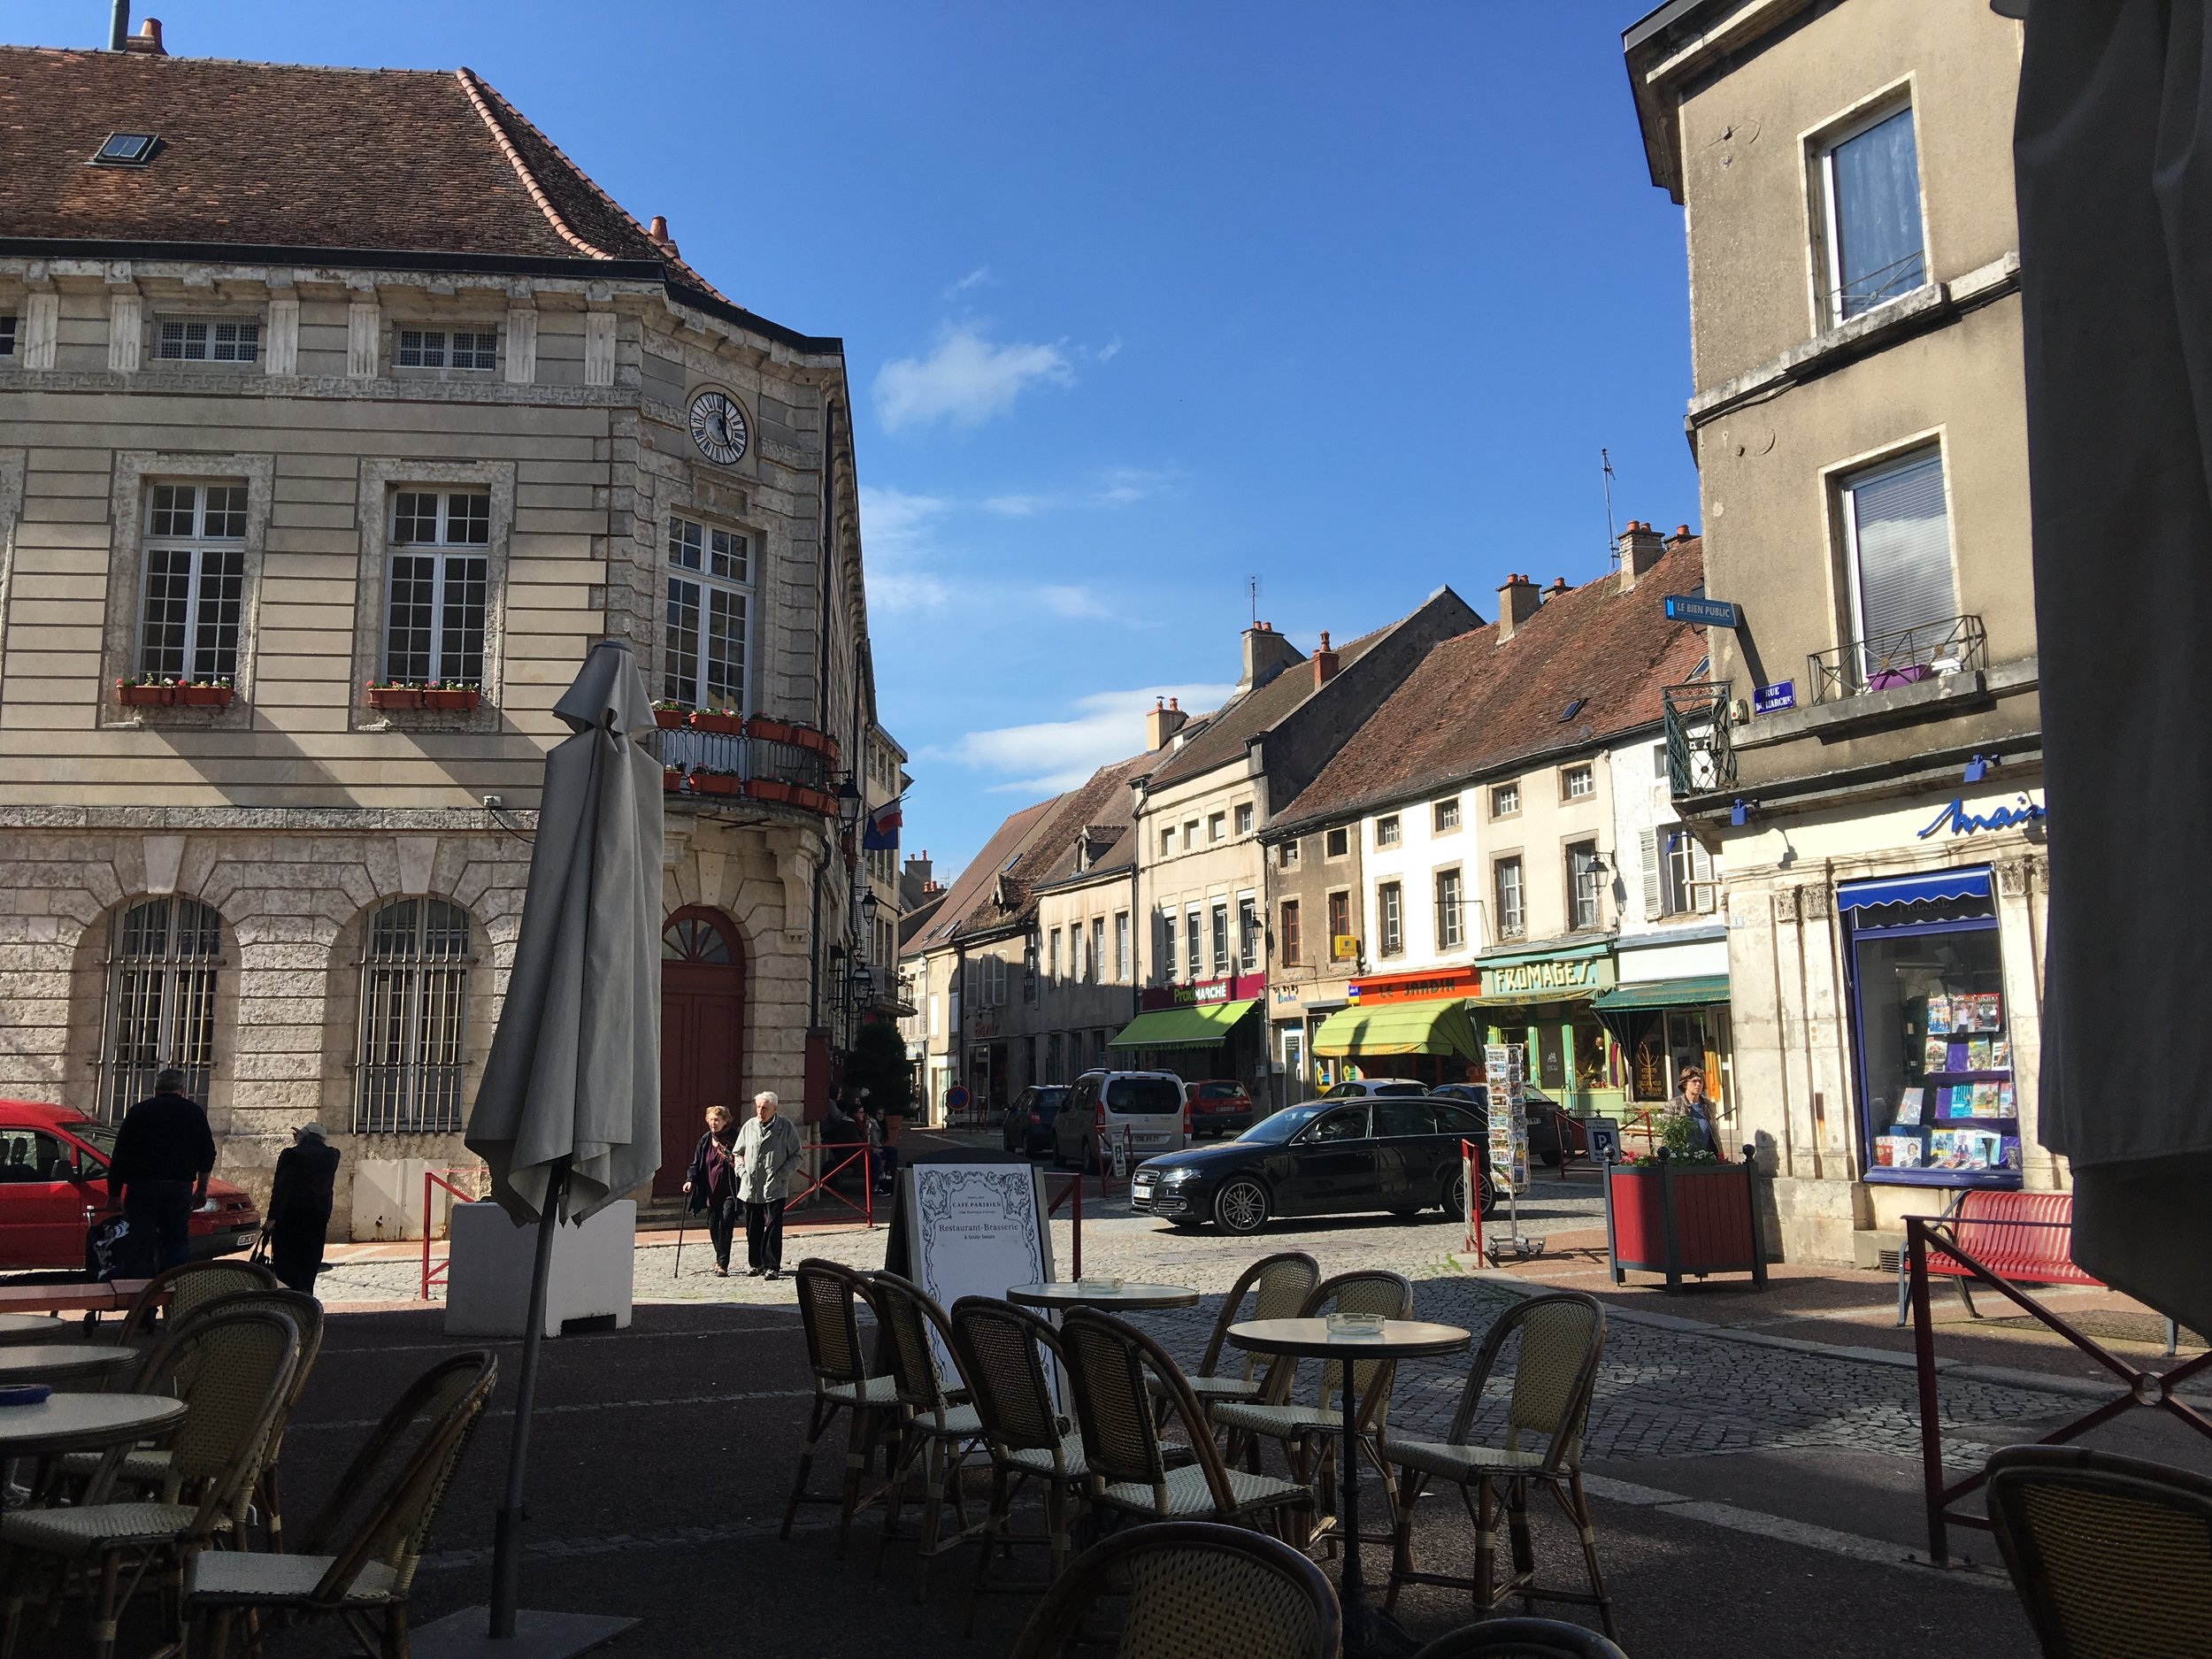 The view from the café in Saulieu